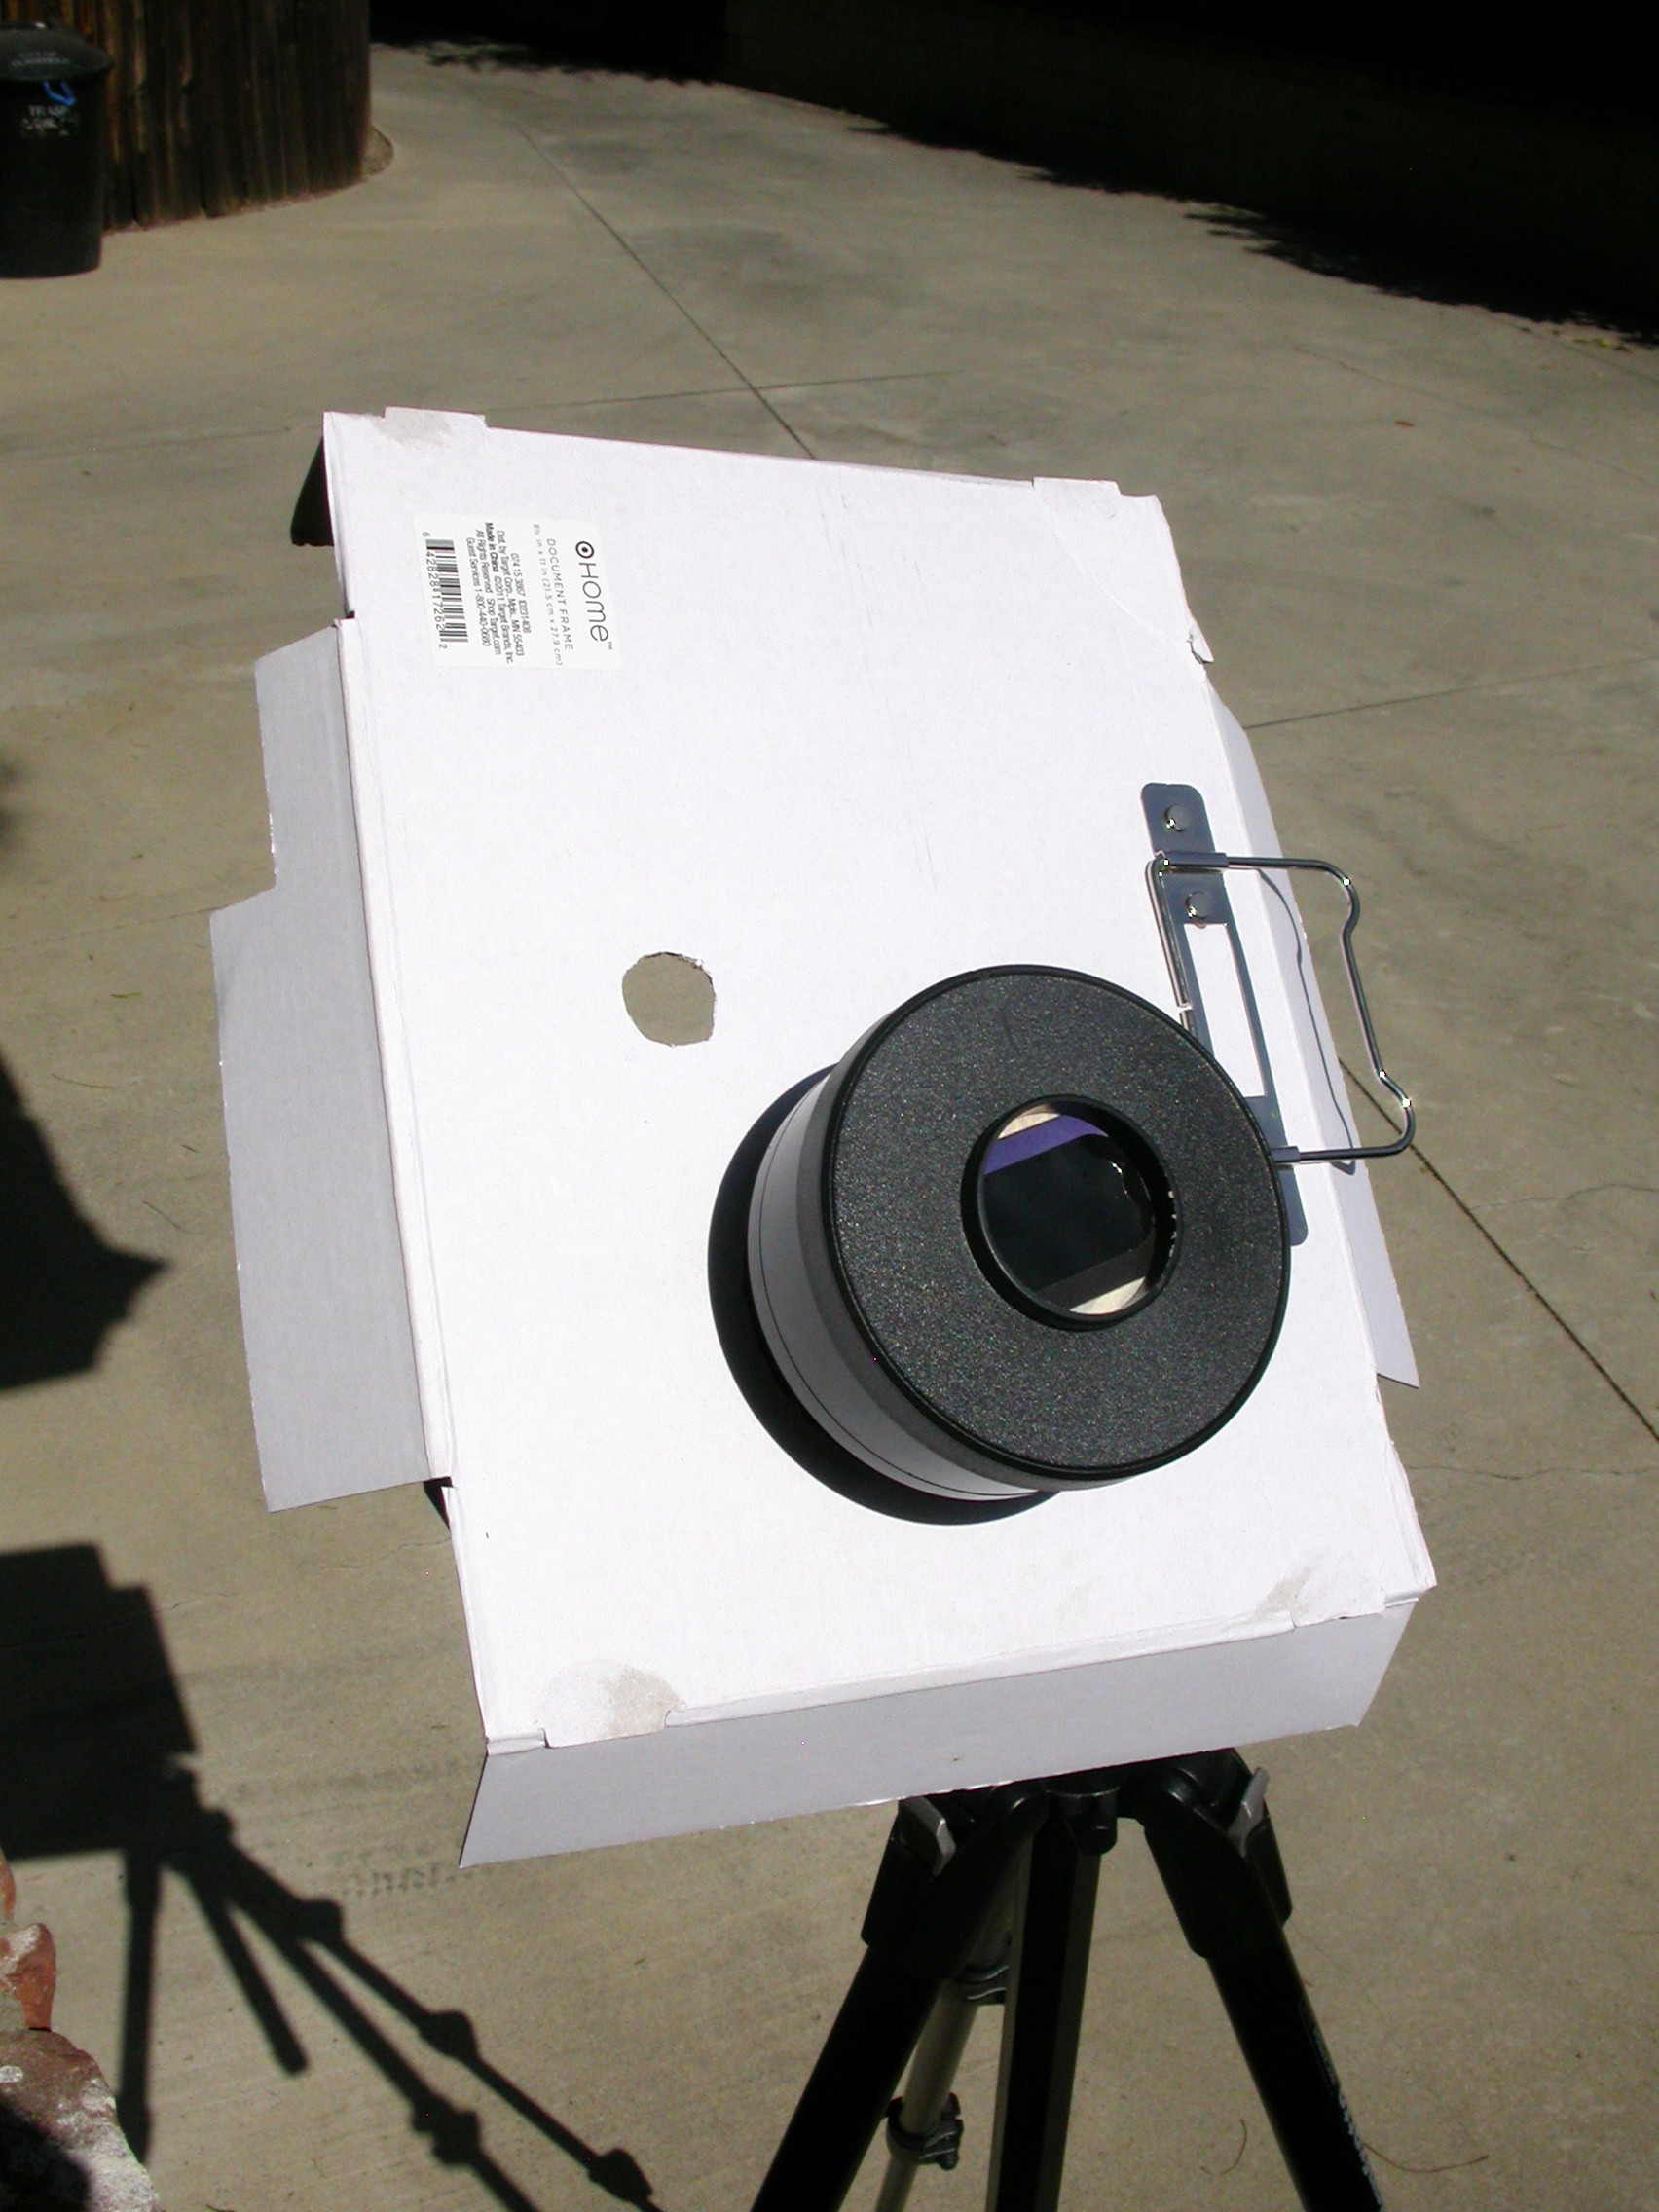 Best ideas about Eclipse Glasses DIY . Save or Pin DIY Astronomy Projects Now.